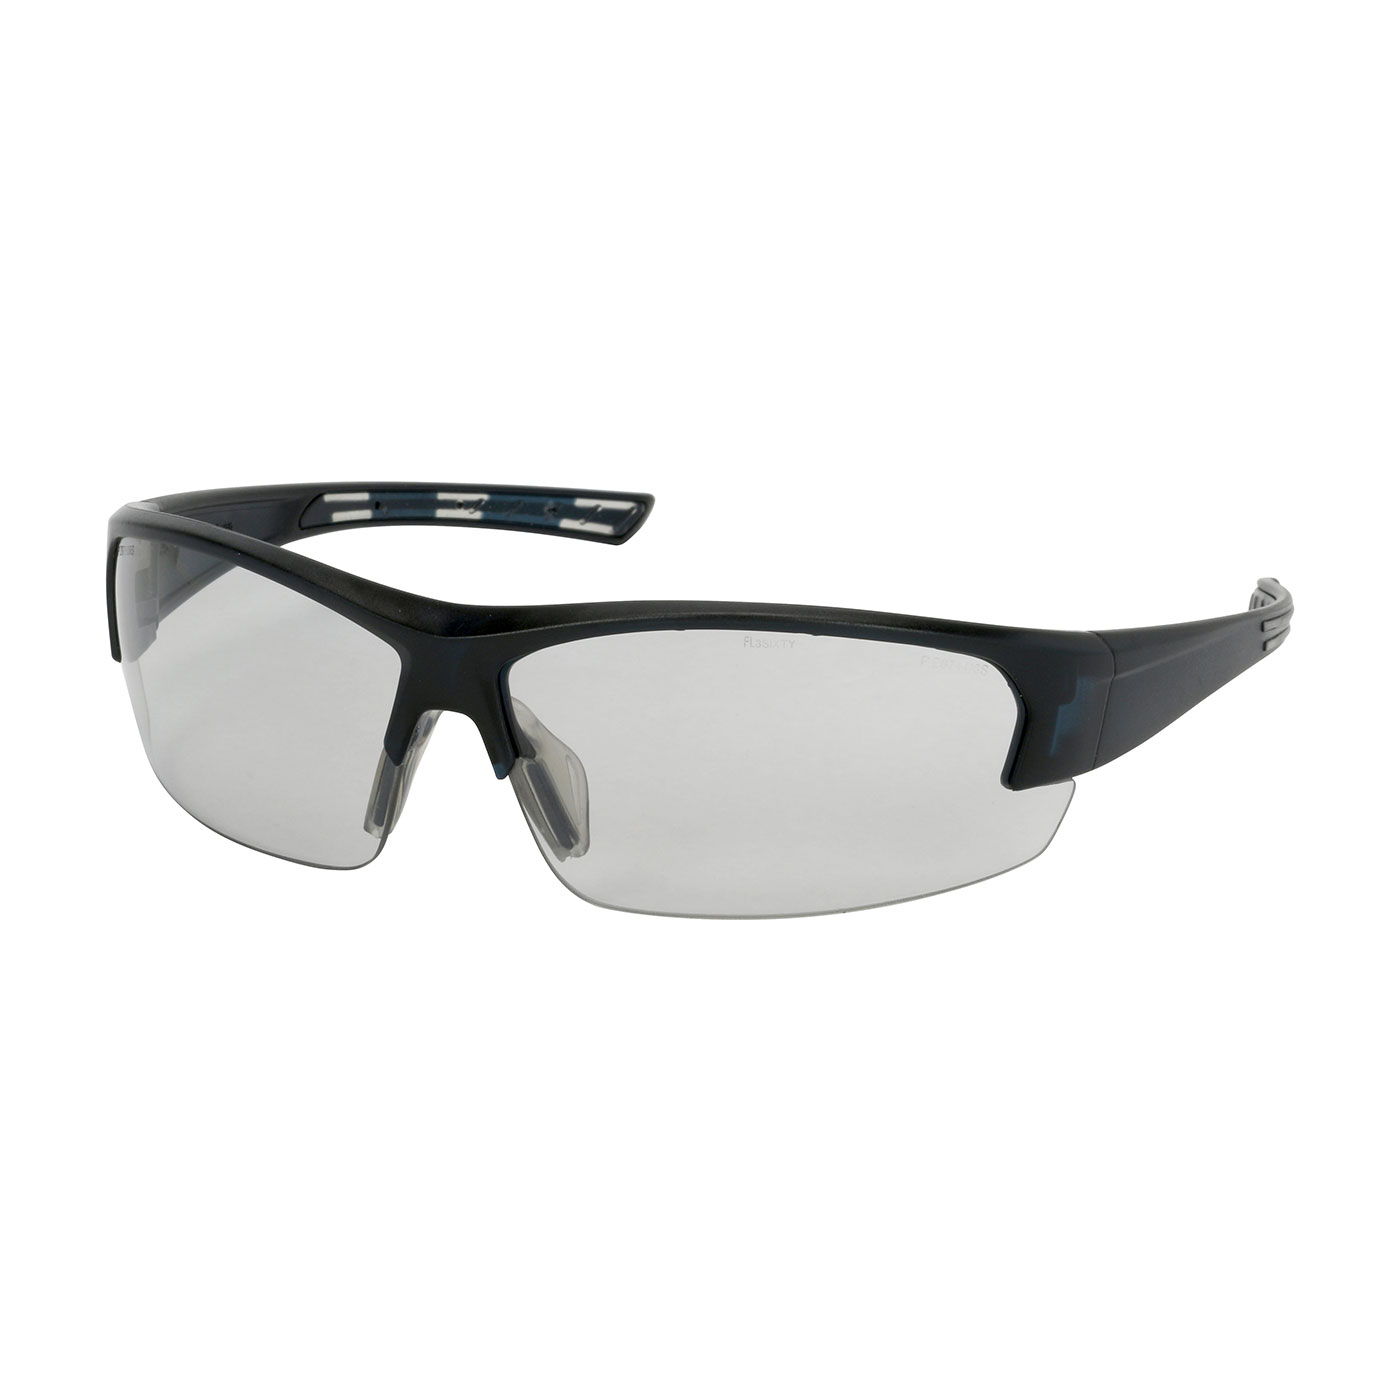 Semi-Rimless Safety Glasses with Dark Blue Frame, Light Gray Lens and FogLess® 3Sixty™ Coating, Dark Blue, OS